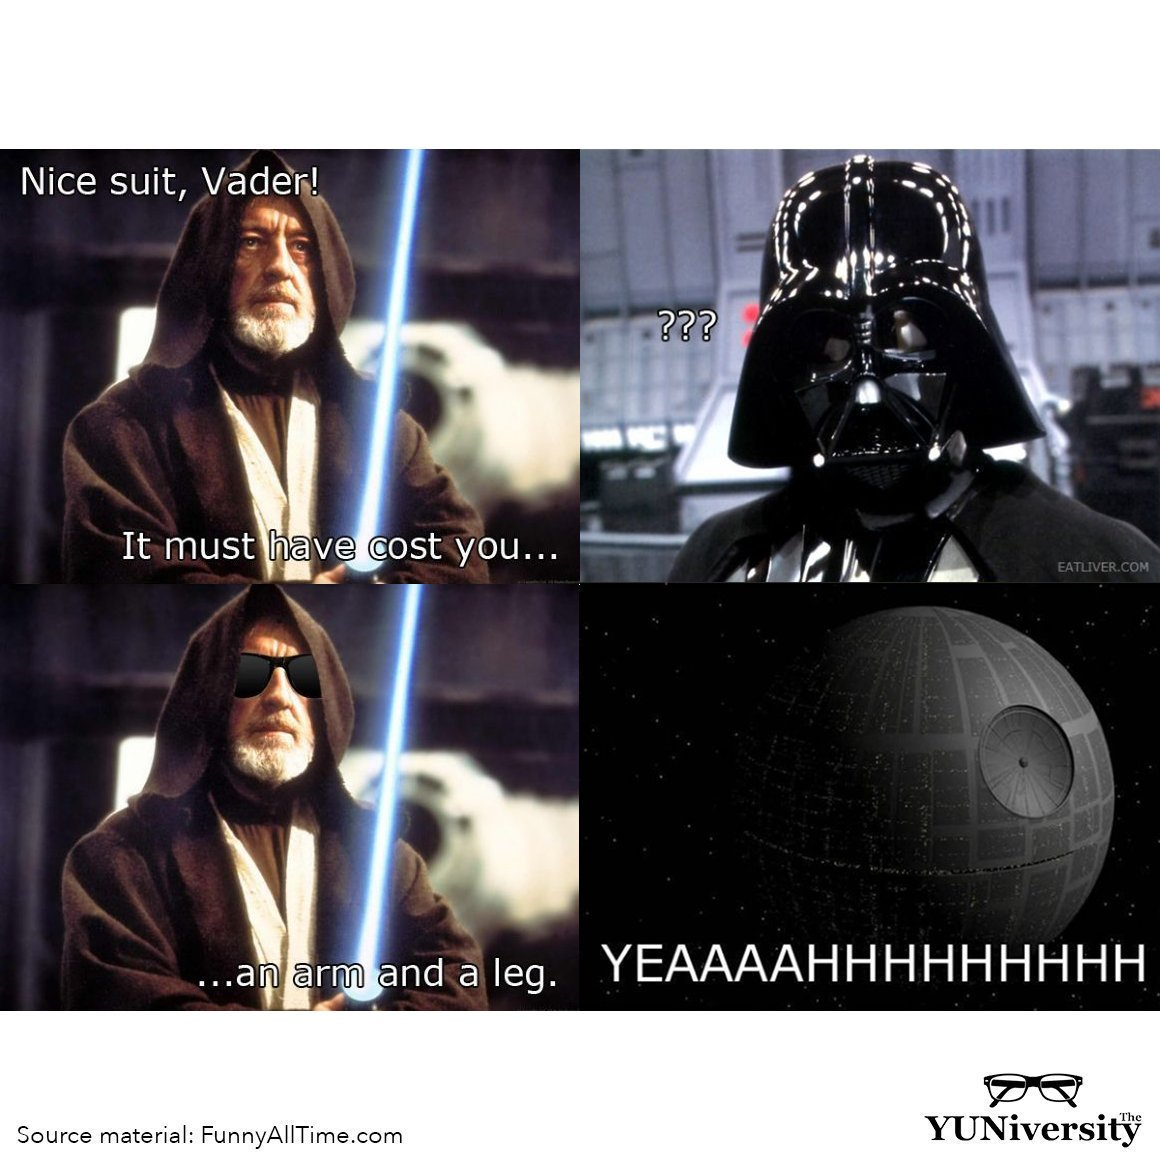 """An arm and a leg"" = a lot of money; an excessively high cost 💸 Darth Vader's suit cost him *an arm and a leg*. #idiom #punny 🤣"